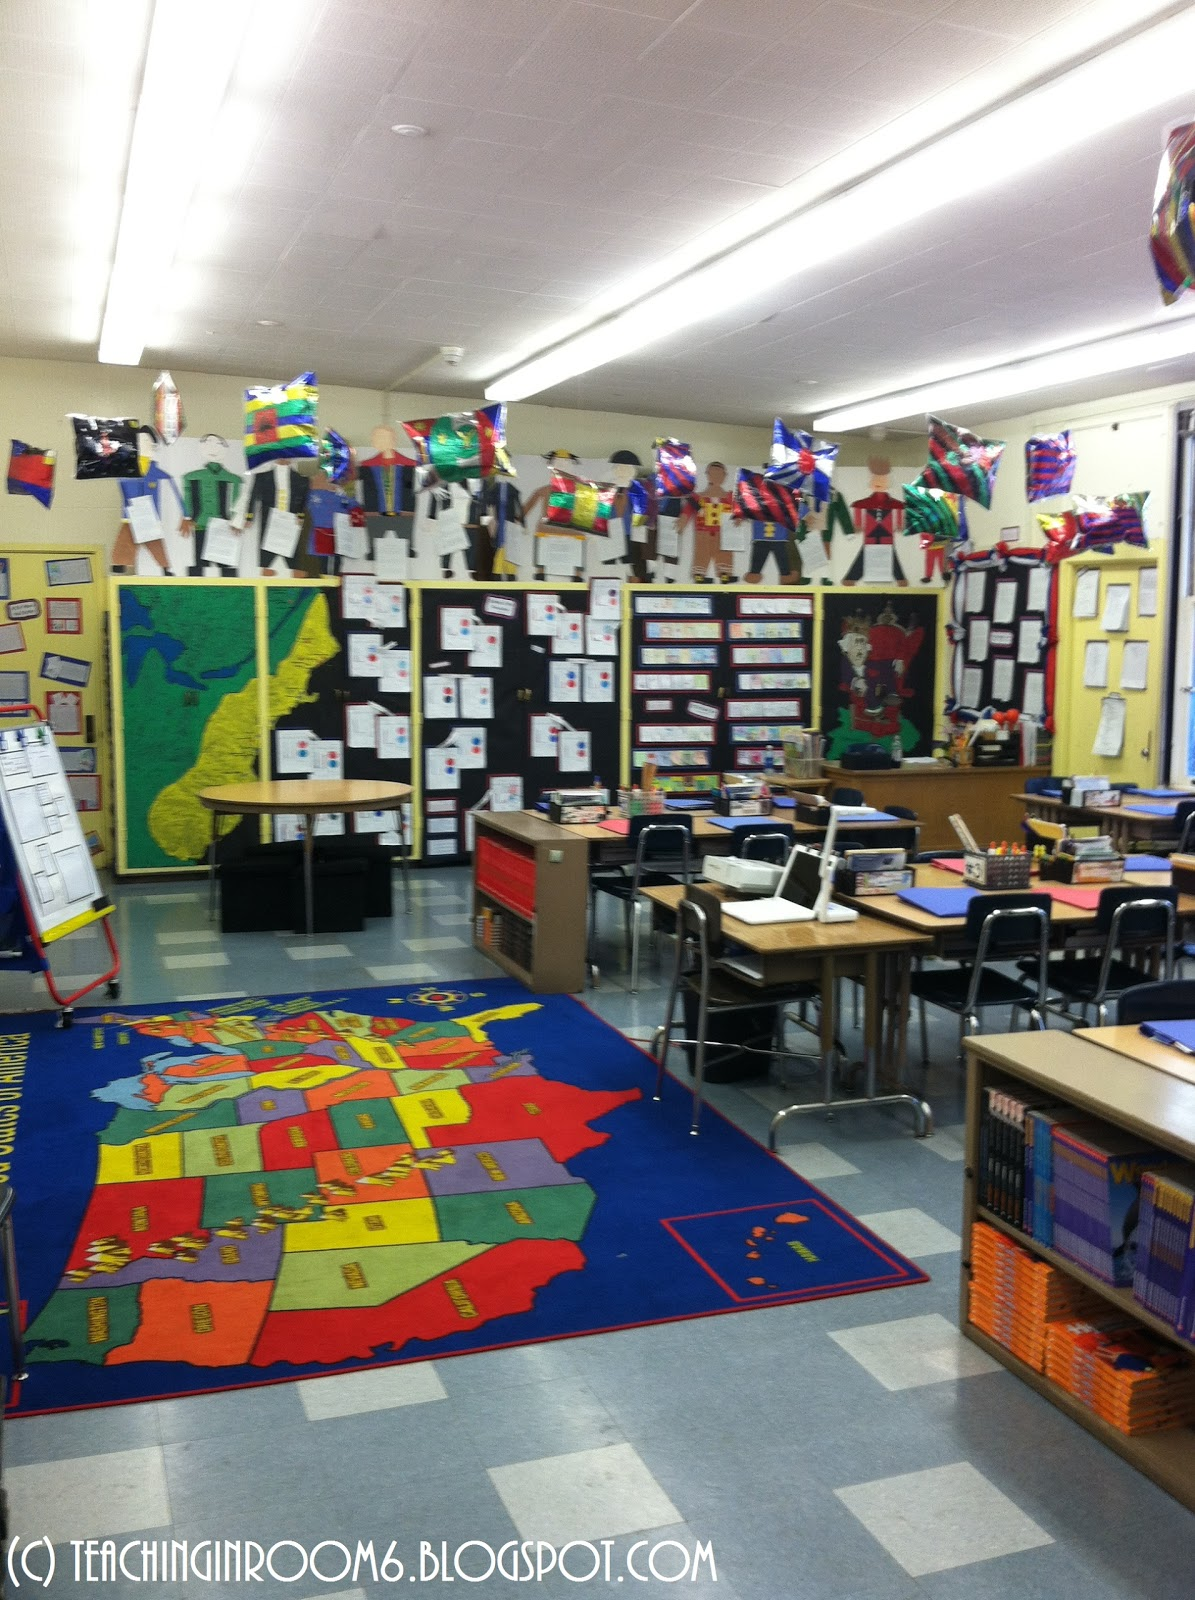 Classroom Organization Ideas 5th Grade ~ Bright ideas a rug th grade teaching in room